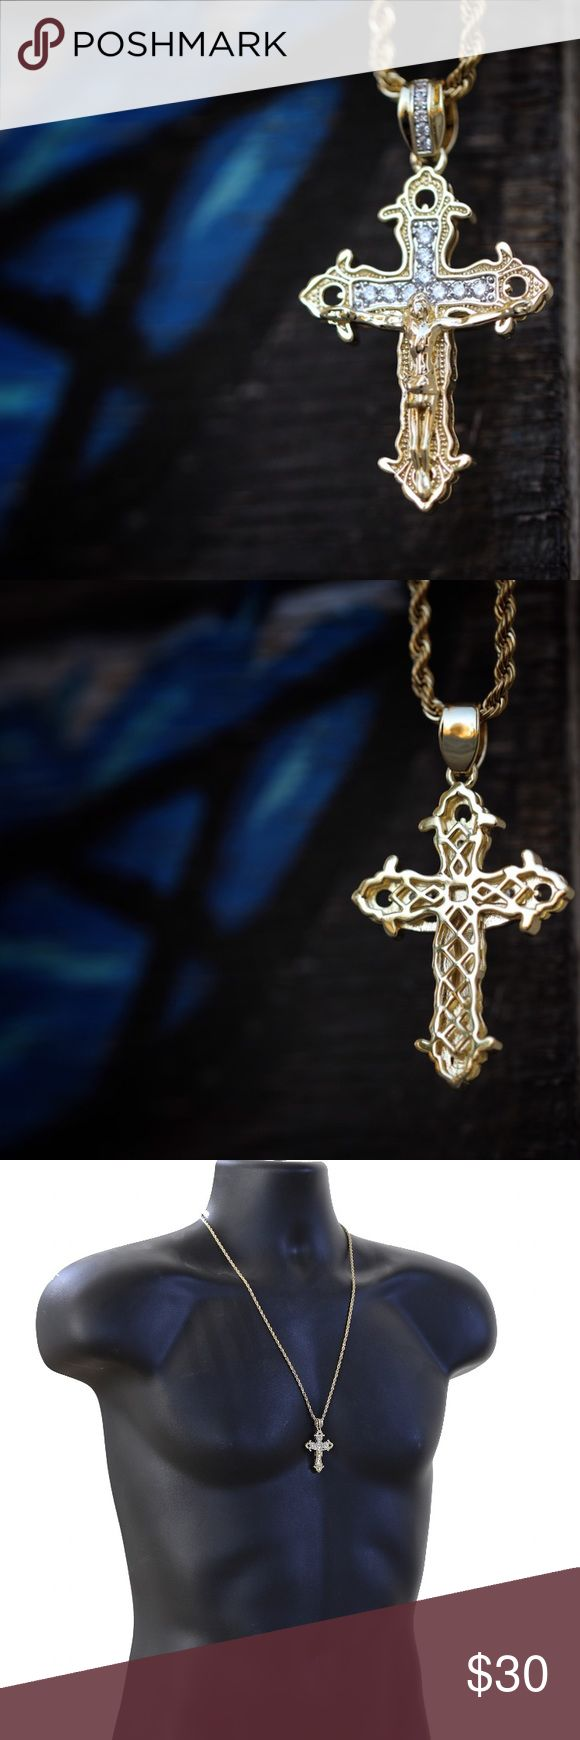 Mini Gold Jesus Cross Pendant Necklace Men's Mini Gold Jesus Piece Cross Pendant Necklace Set  Chain is made of 316 stainless steel with a 14k gold plating on top. Pendant is mini size 25mm in length. Lab simulated diamonds. 2mm with 20,22,24 or 26 inch 316 stainless steel 14k gold plated rope chain necklace included. TSV Jewelers Accessories Jewelry